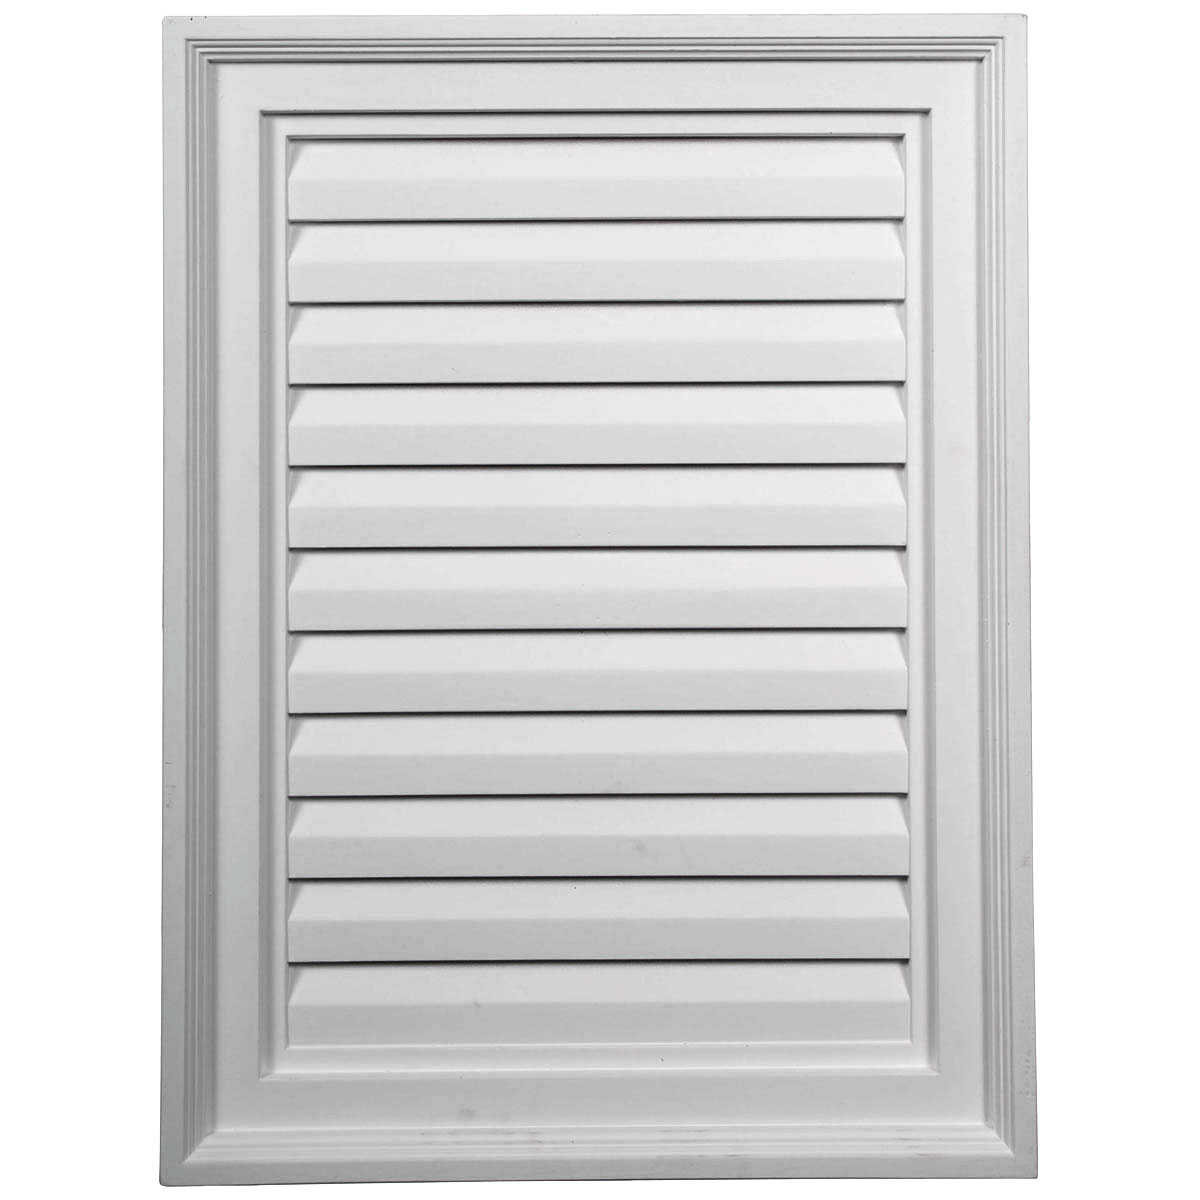 18'W x 24'H x 2 1/4'P, Vertical Gable Vent Louver, Decorative